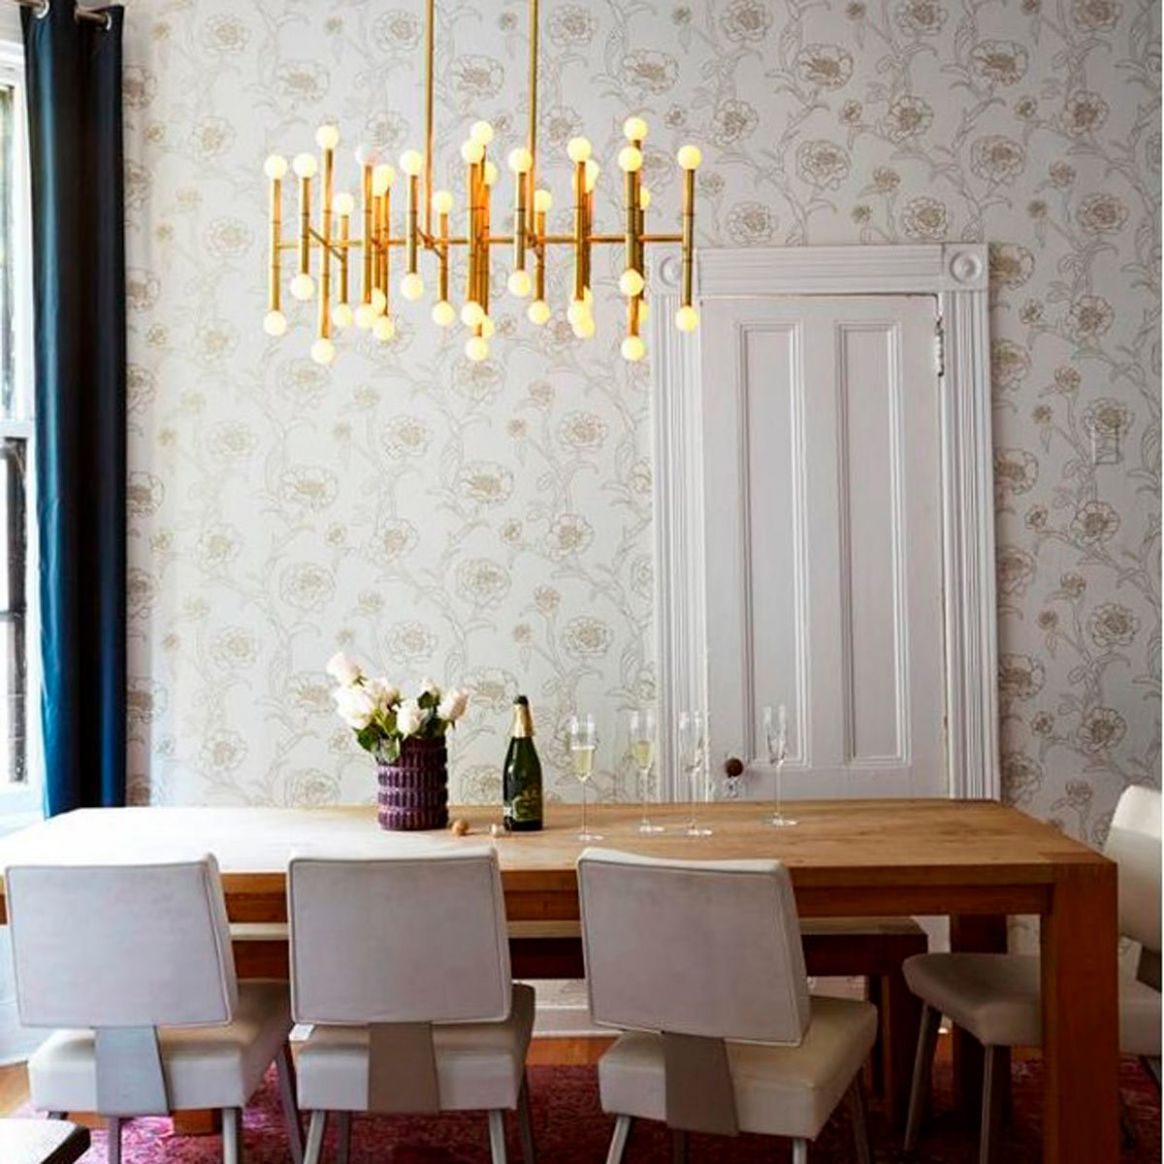 12 Clever Small Dining Room Ideas | Taste of Home - narrow dining room ideas